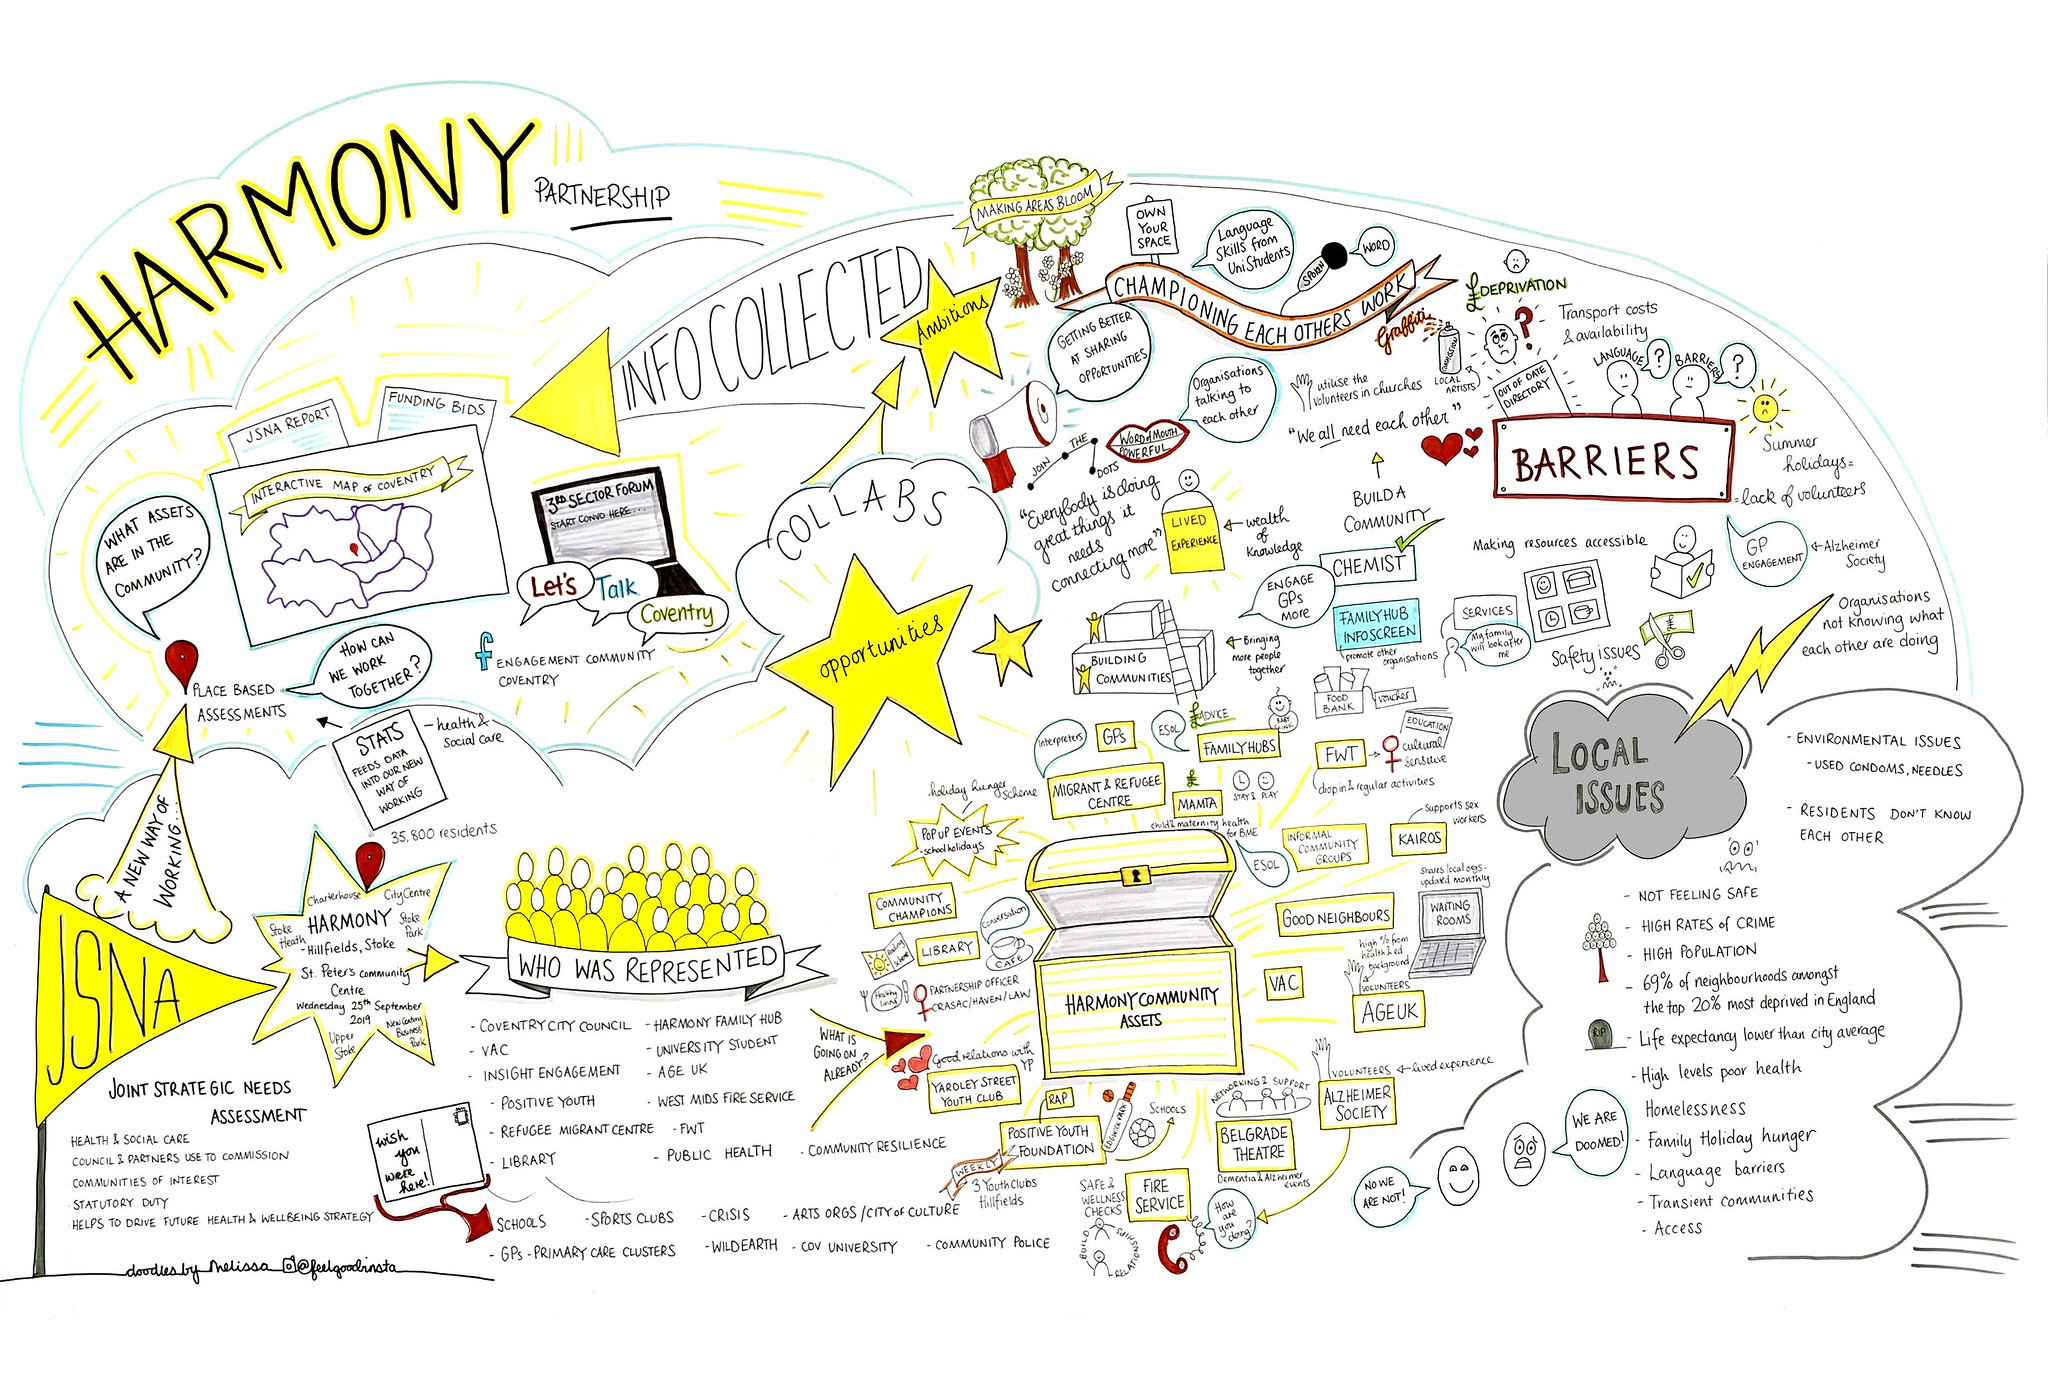 Coventry Joint Strategic Needs Assessment (JSNA) 2020 Profiles - Harmony - Embedded Artists